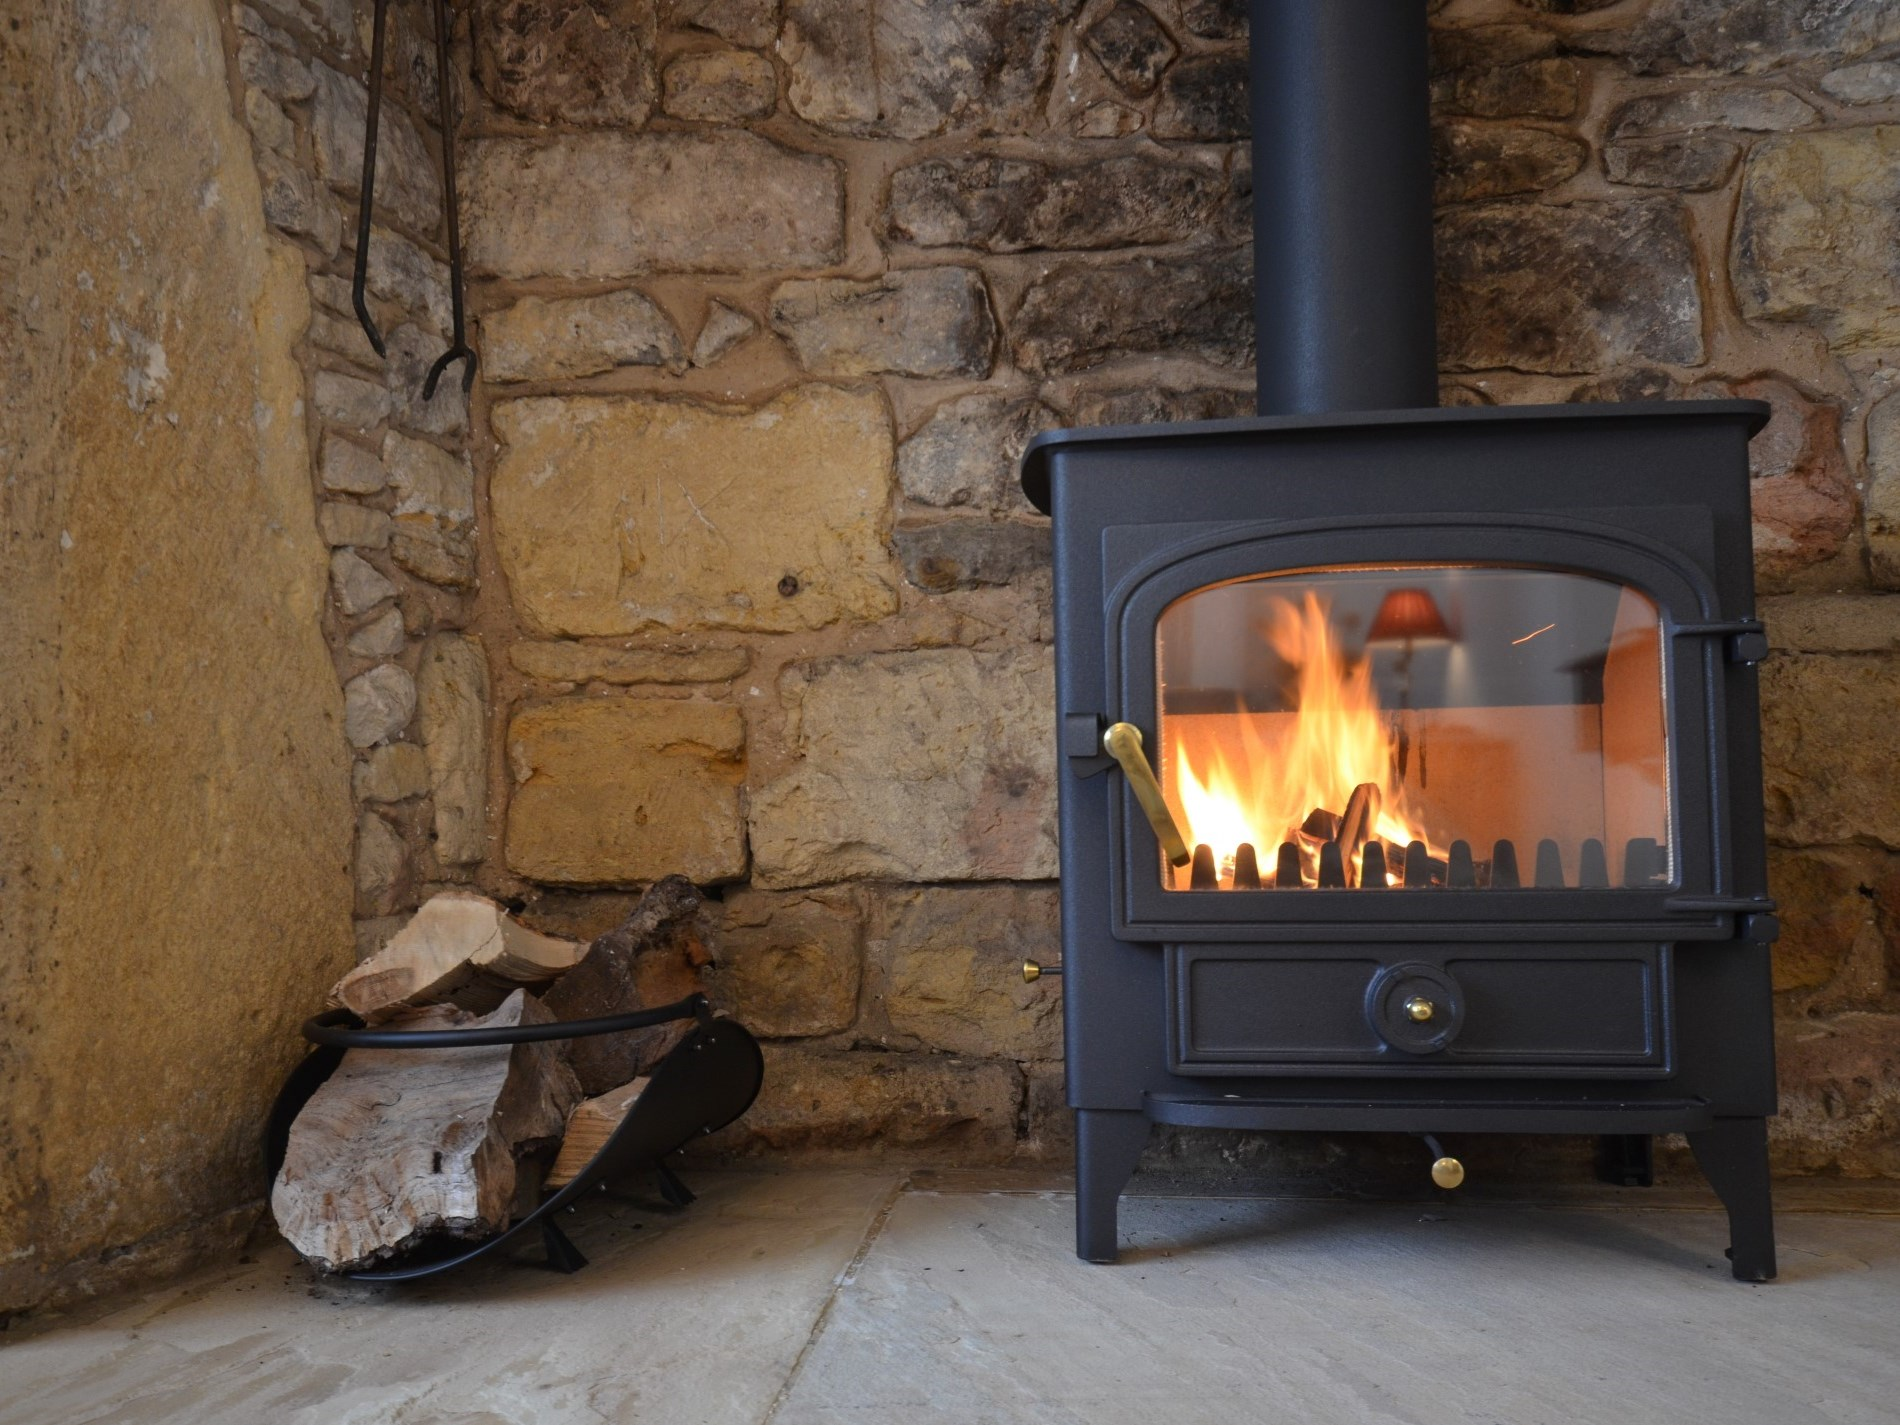 Enjoy an evening in front of the woodburner